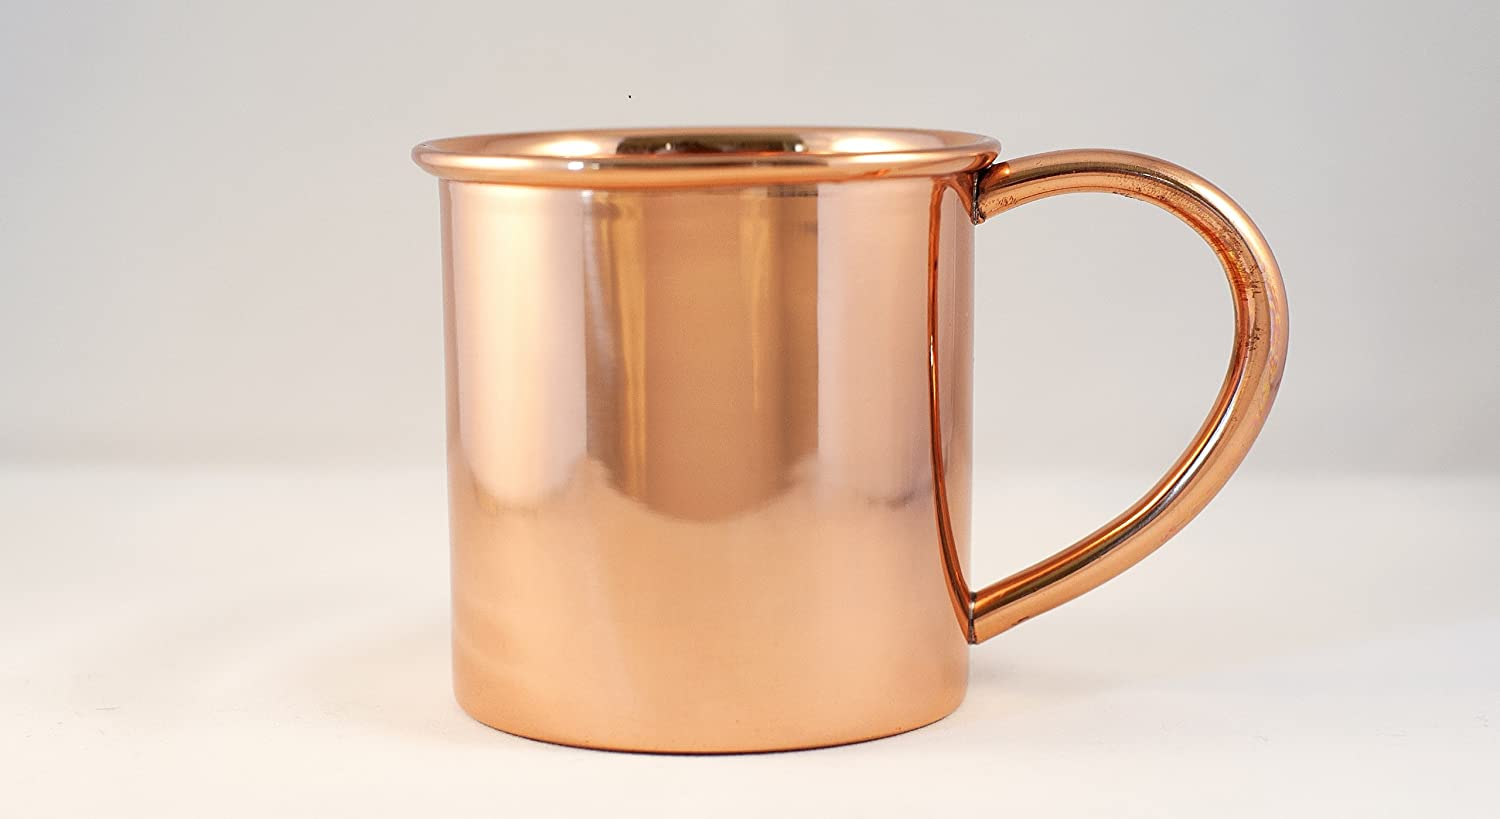 copper mug for moscow mules 100 pure copper free express delivery from uk ebay. Black Bedroom Furniture Sets. Home Design Ideas